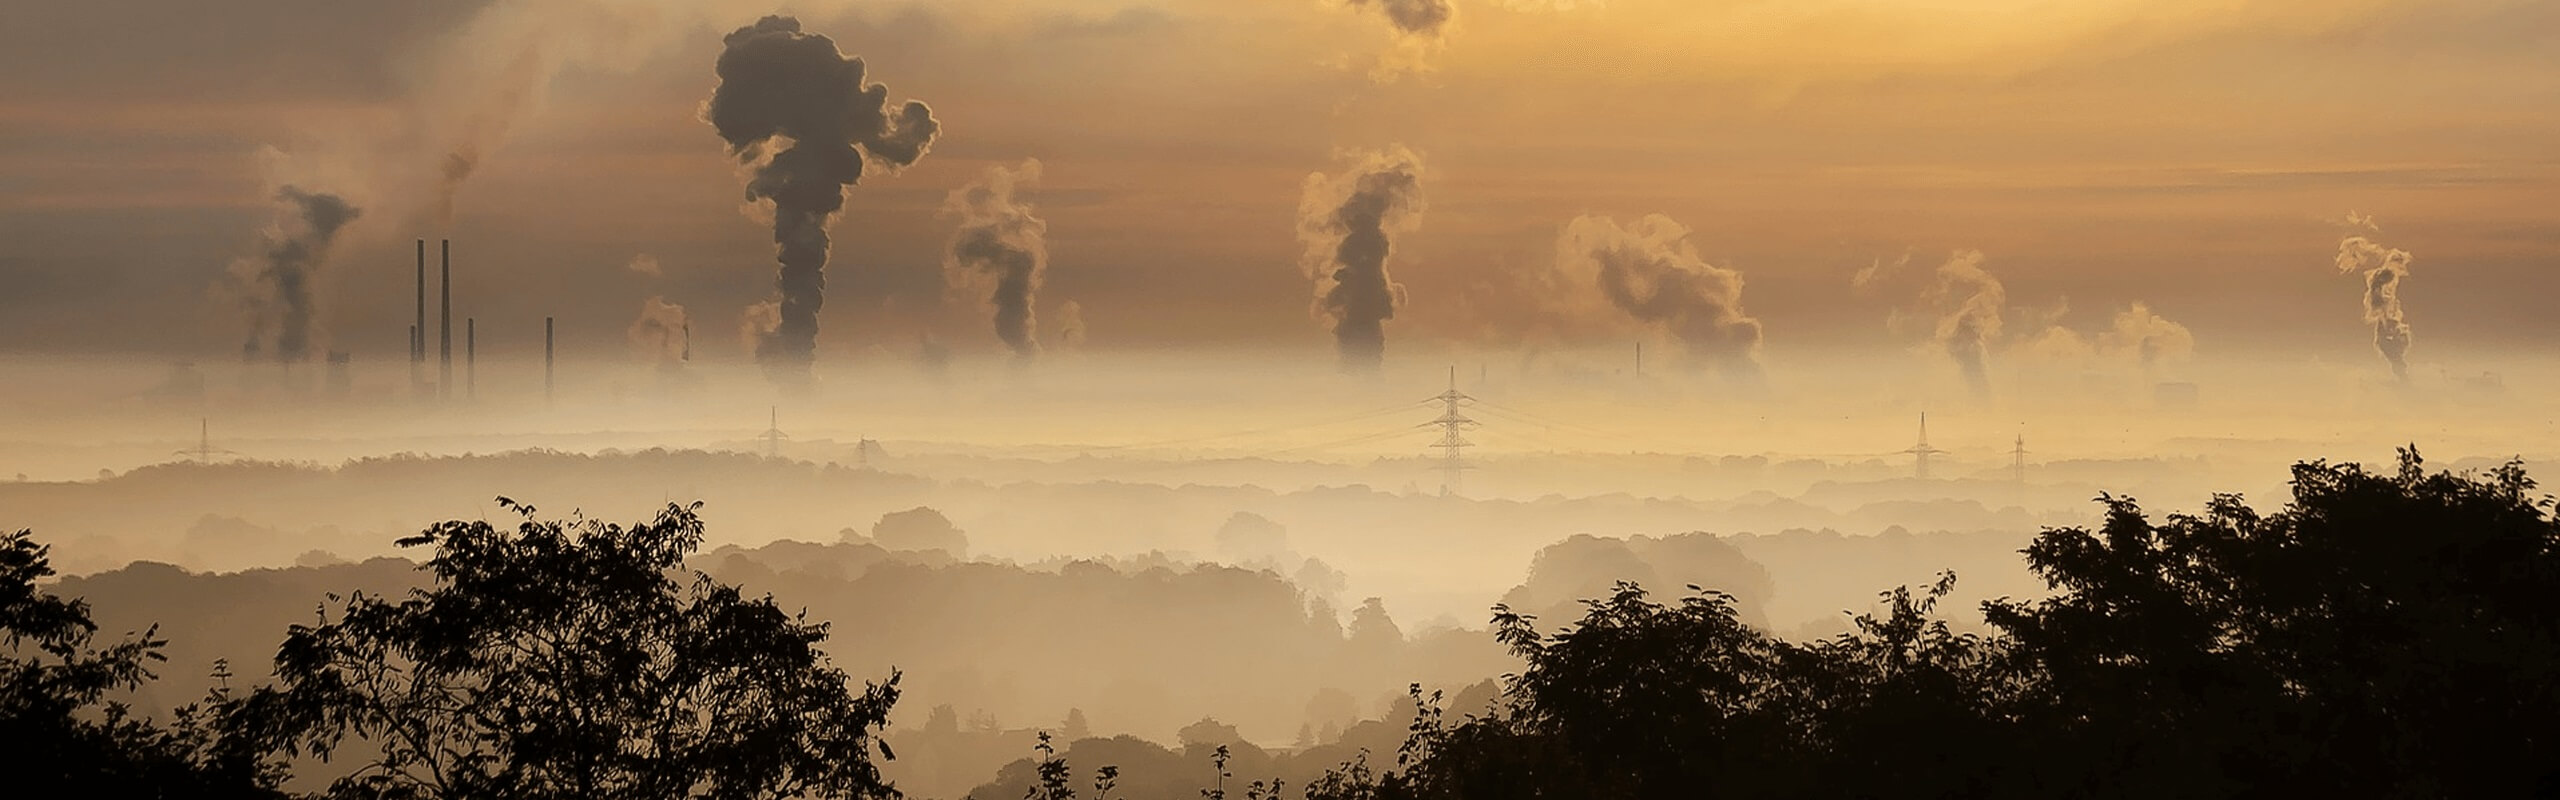 Sunset image with air pollution